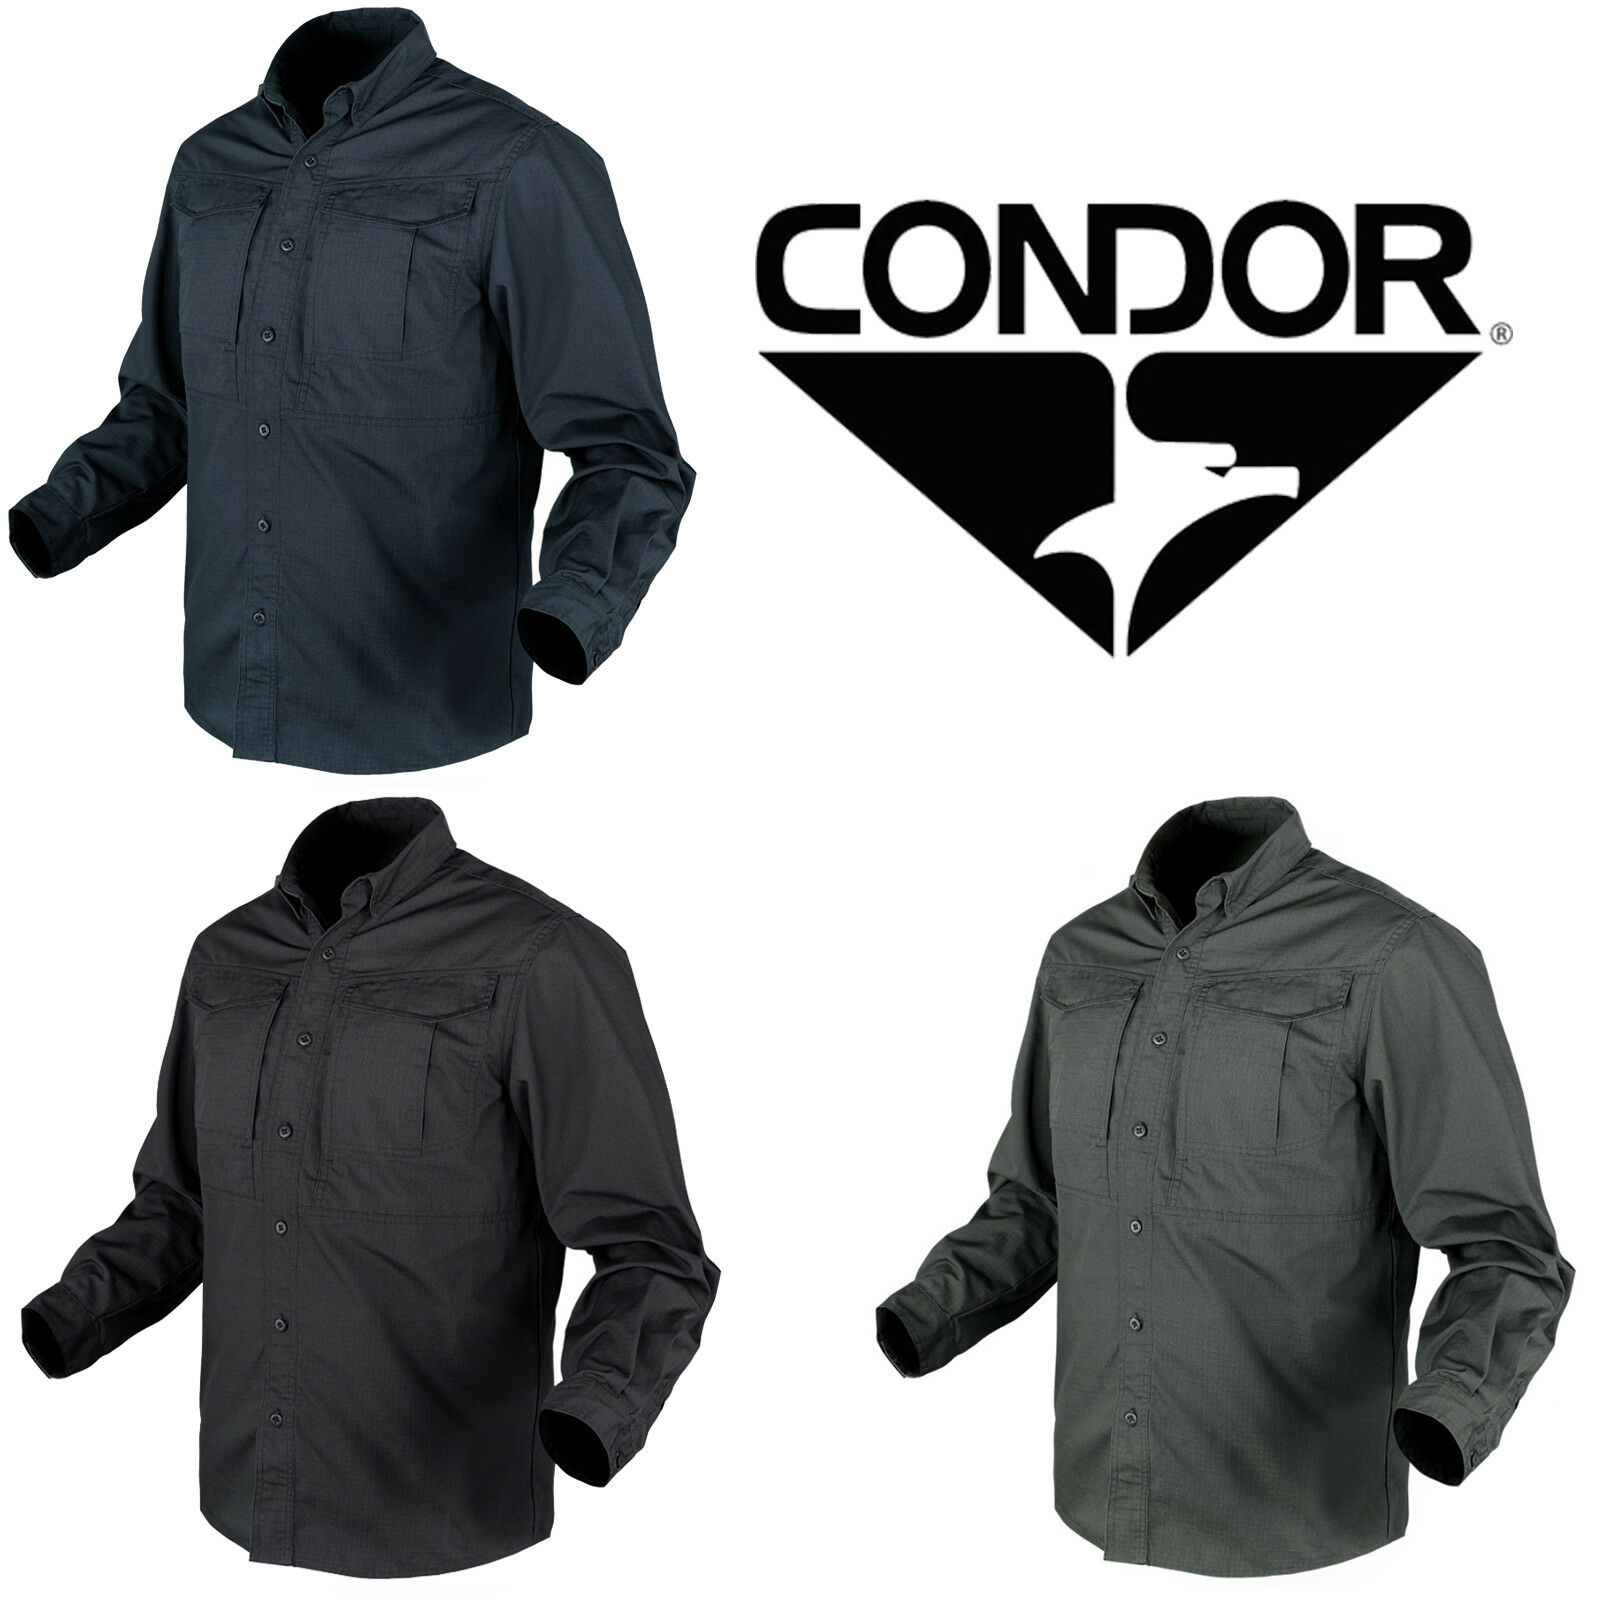 Condor Tactical Rip-Stop Flexible Lightweight Casual Button-Up Tac-Pro Shirt   welcome to order